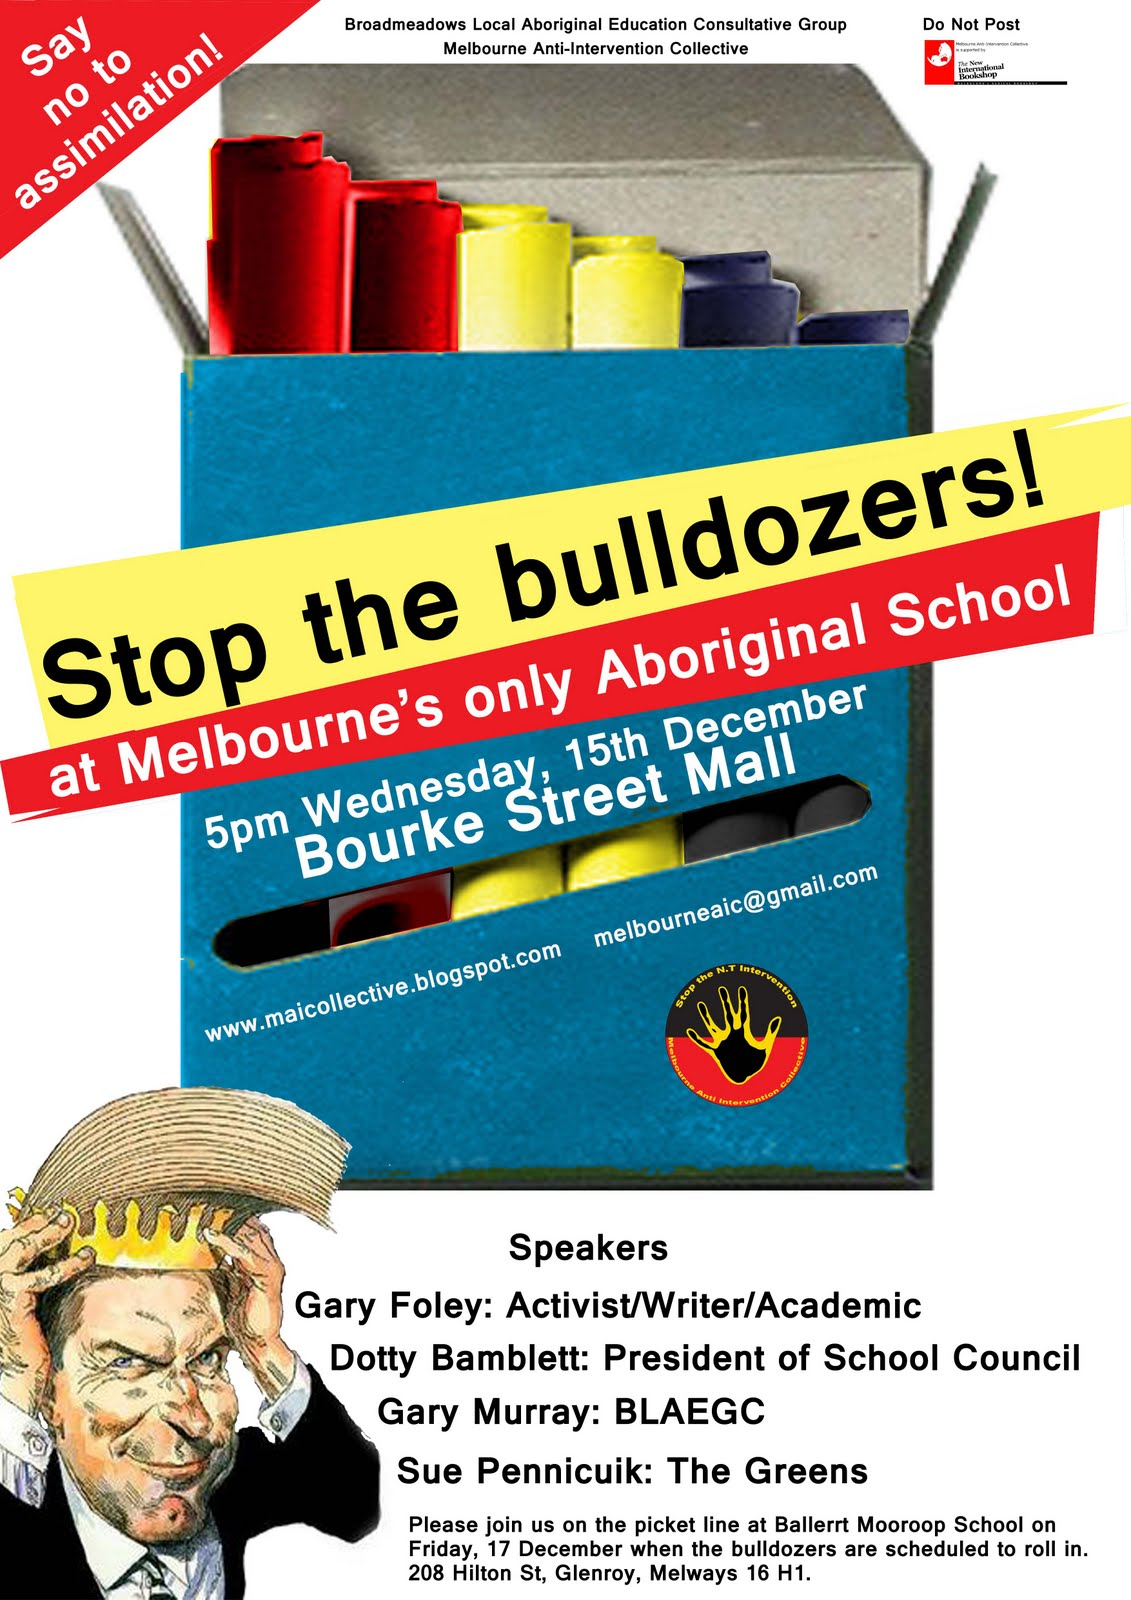 The Network: Stop the bulldozers at Melbourne's only